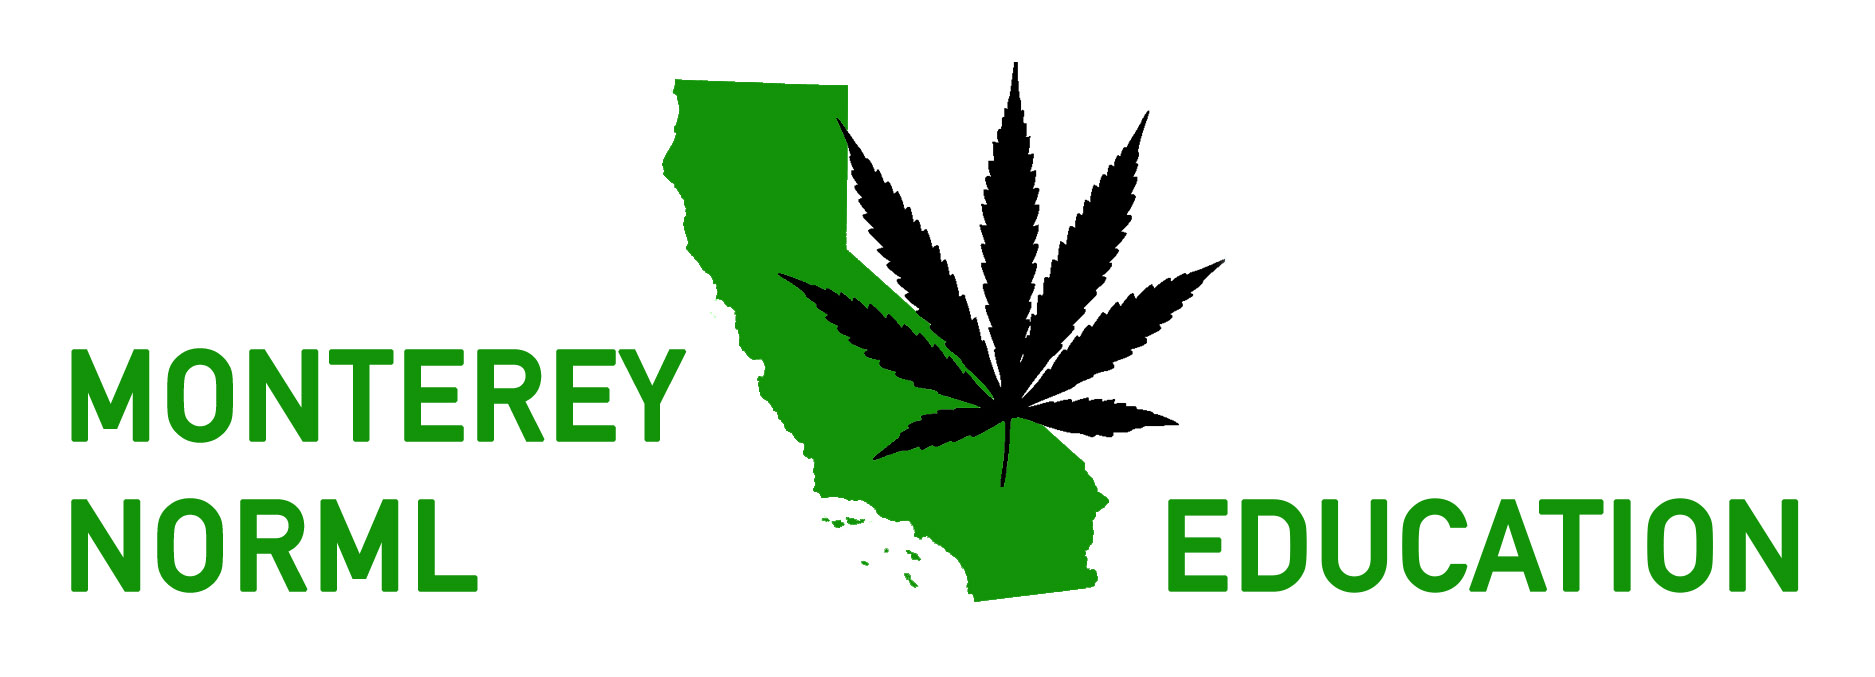 Monterey NORML education banner